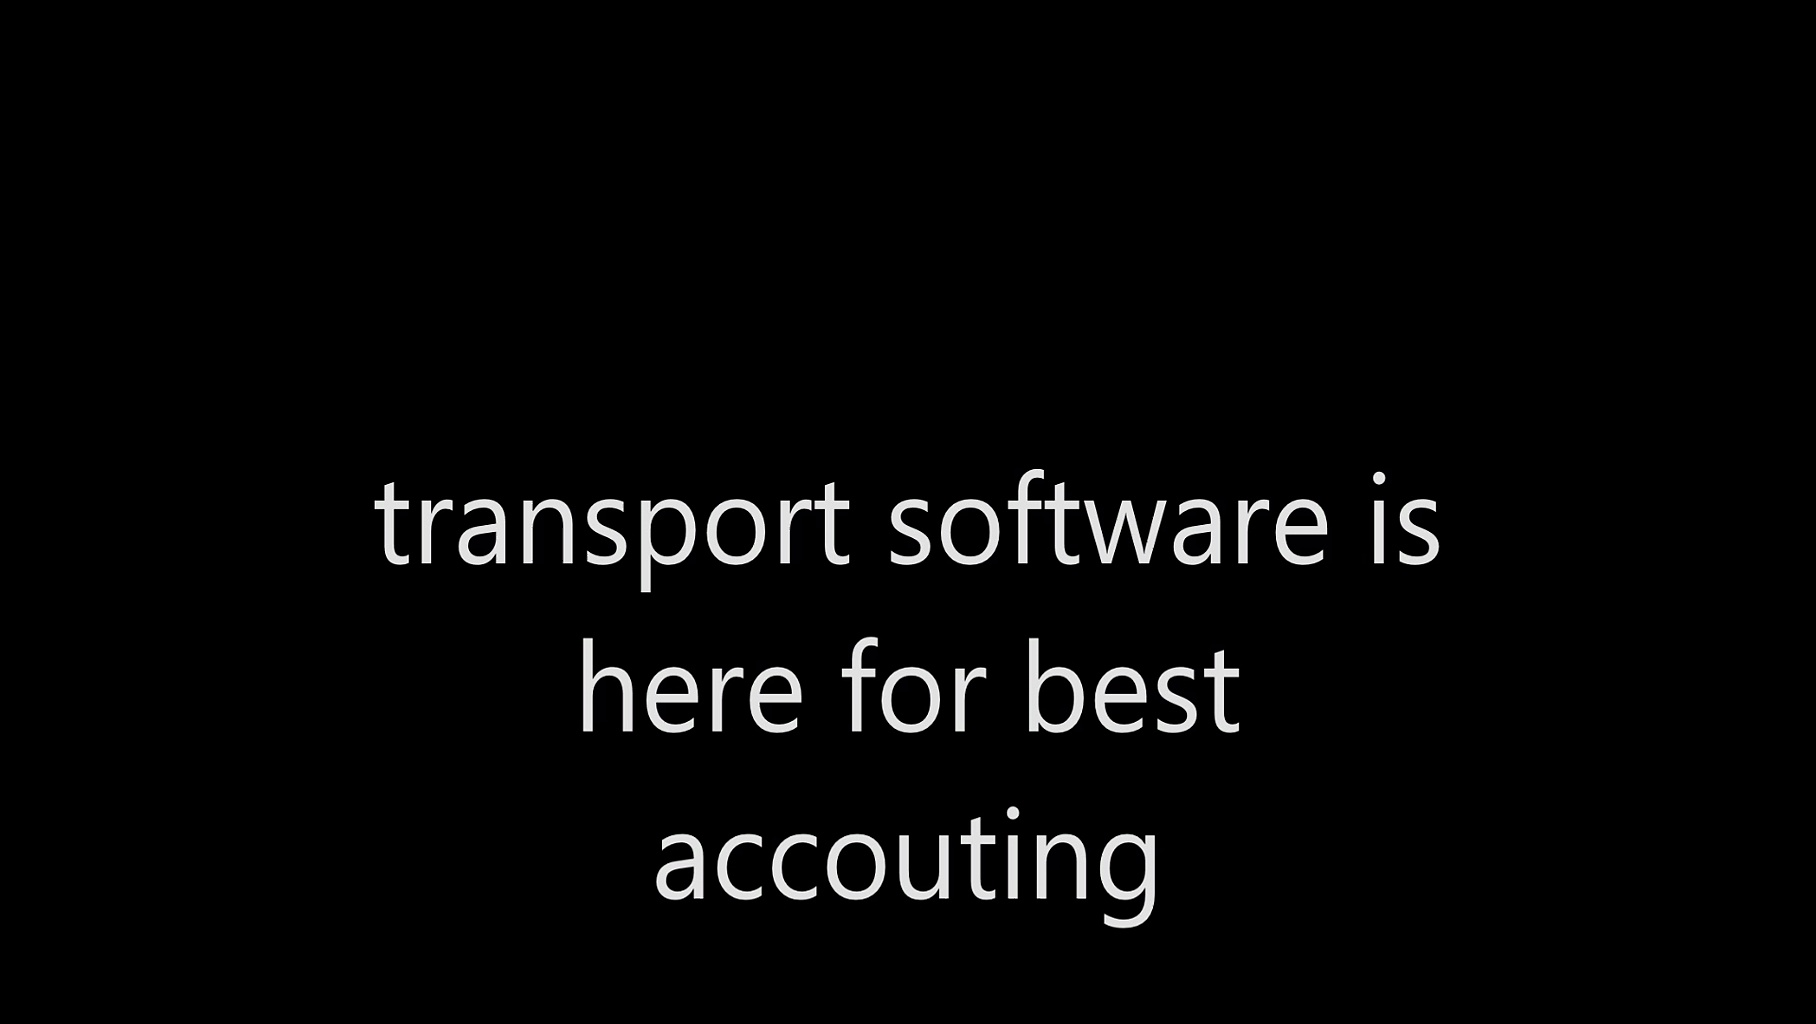 Best Transport Software|Transport Software|Transport Accounting Software